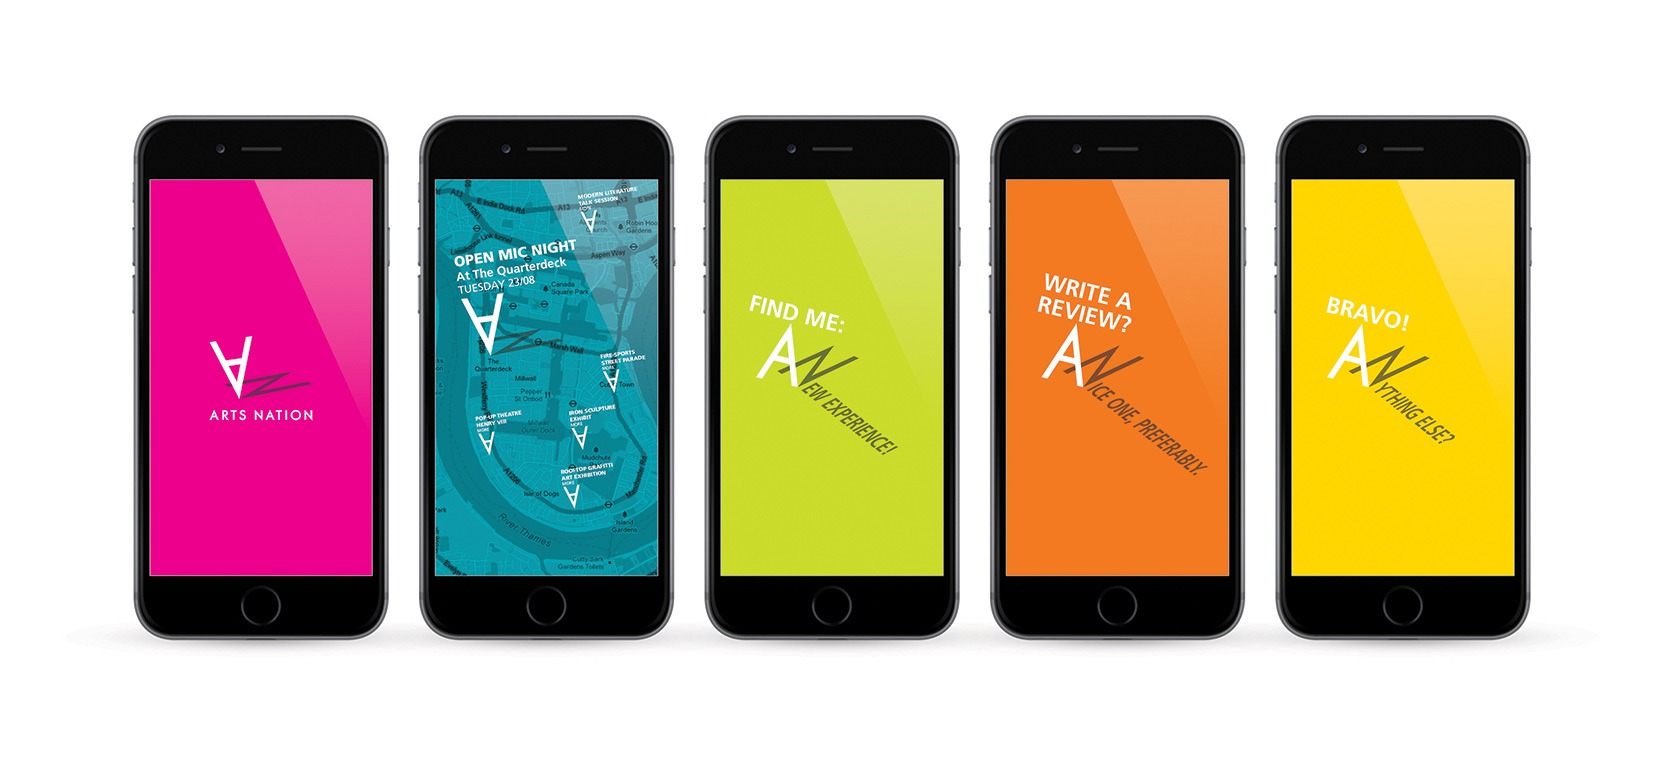 WMH-ARTS-NATION-BRAND-IDENTITY-SMARTPHONE-WEB image